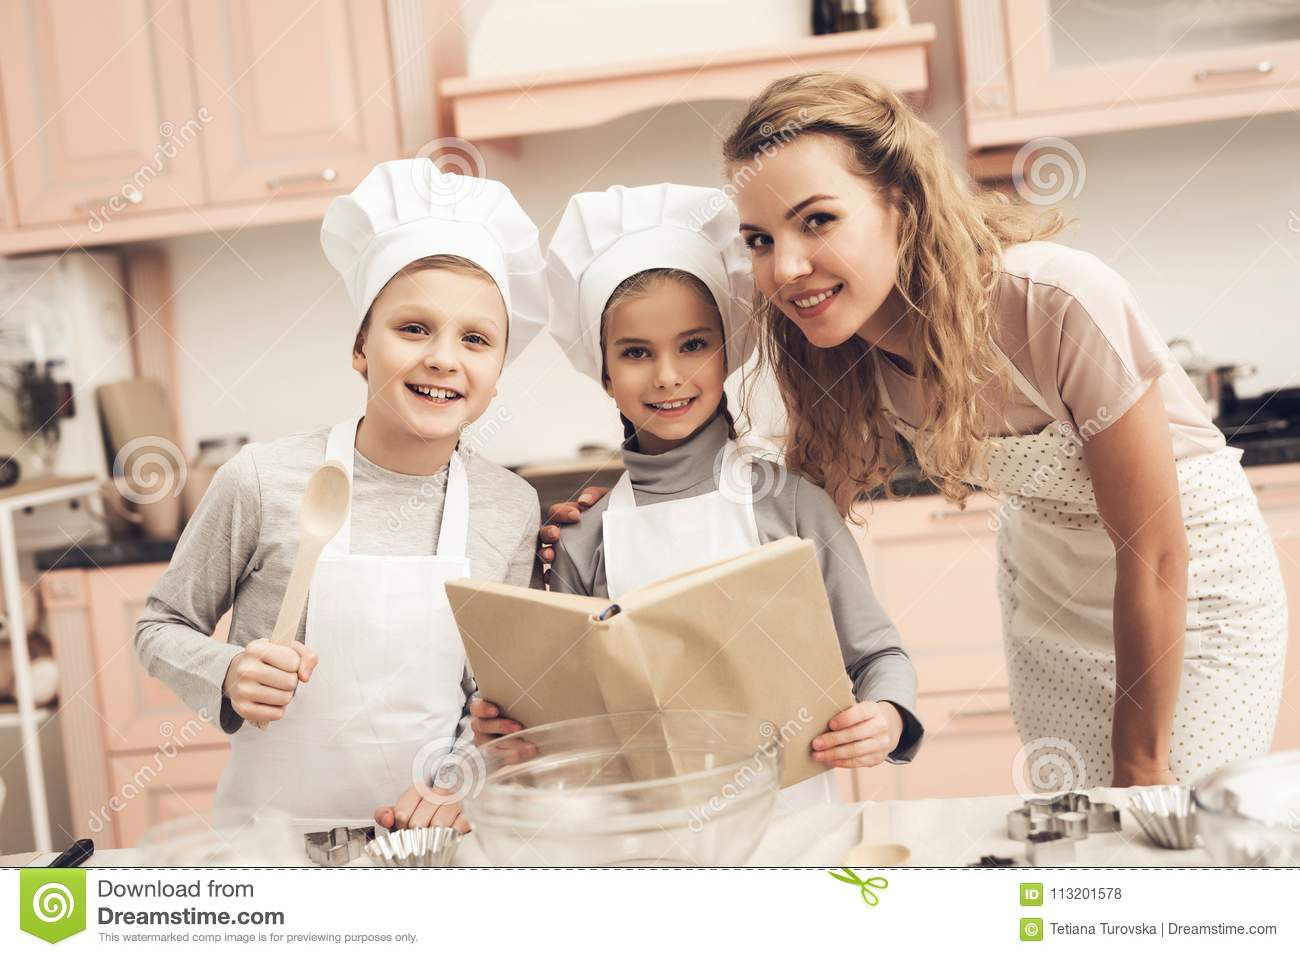 Children with mother in kitchen. Family is reading recipe in cookbook.